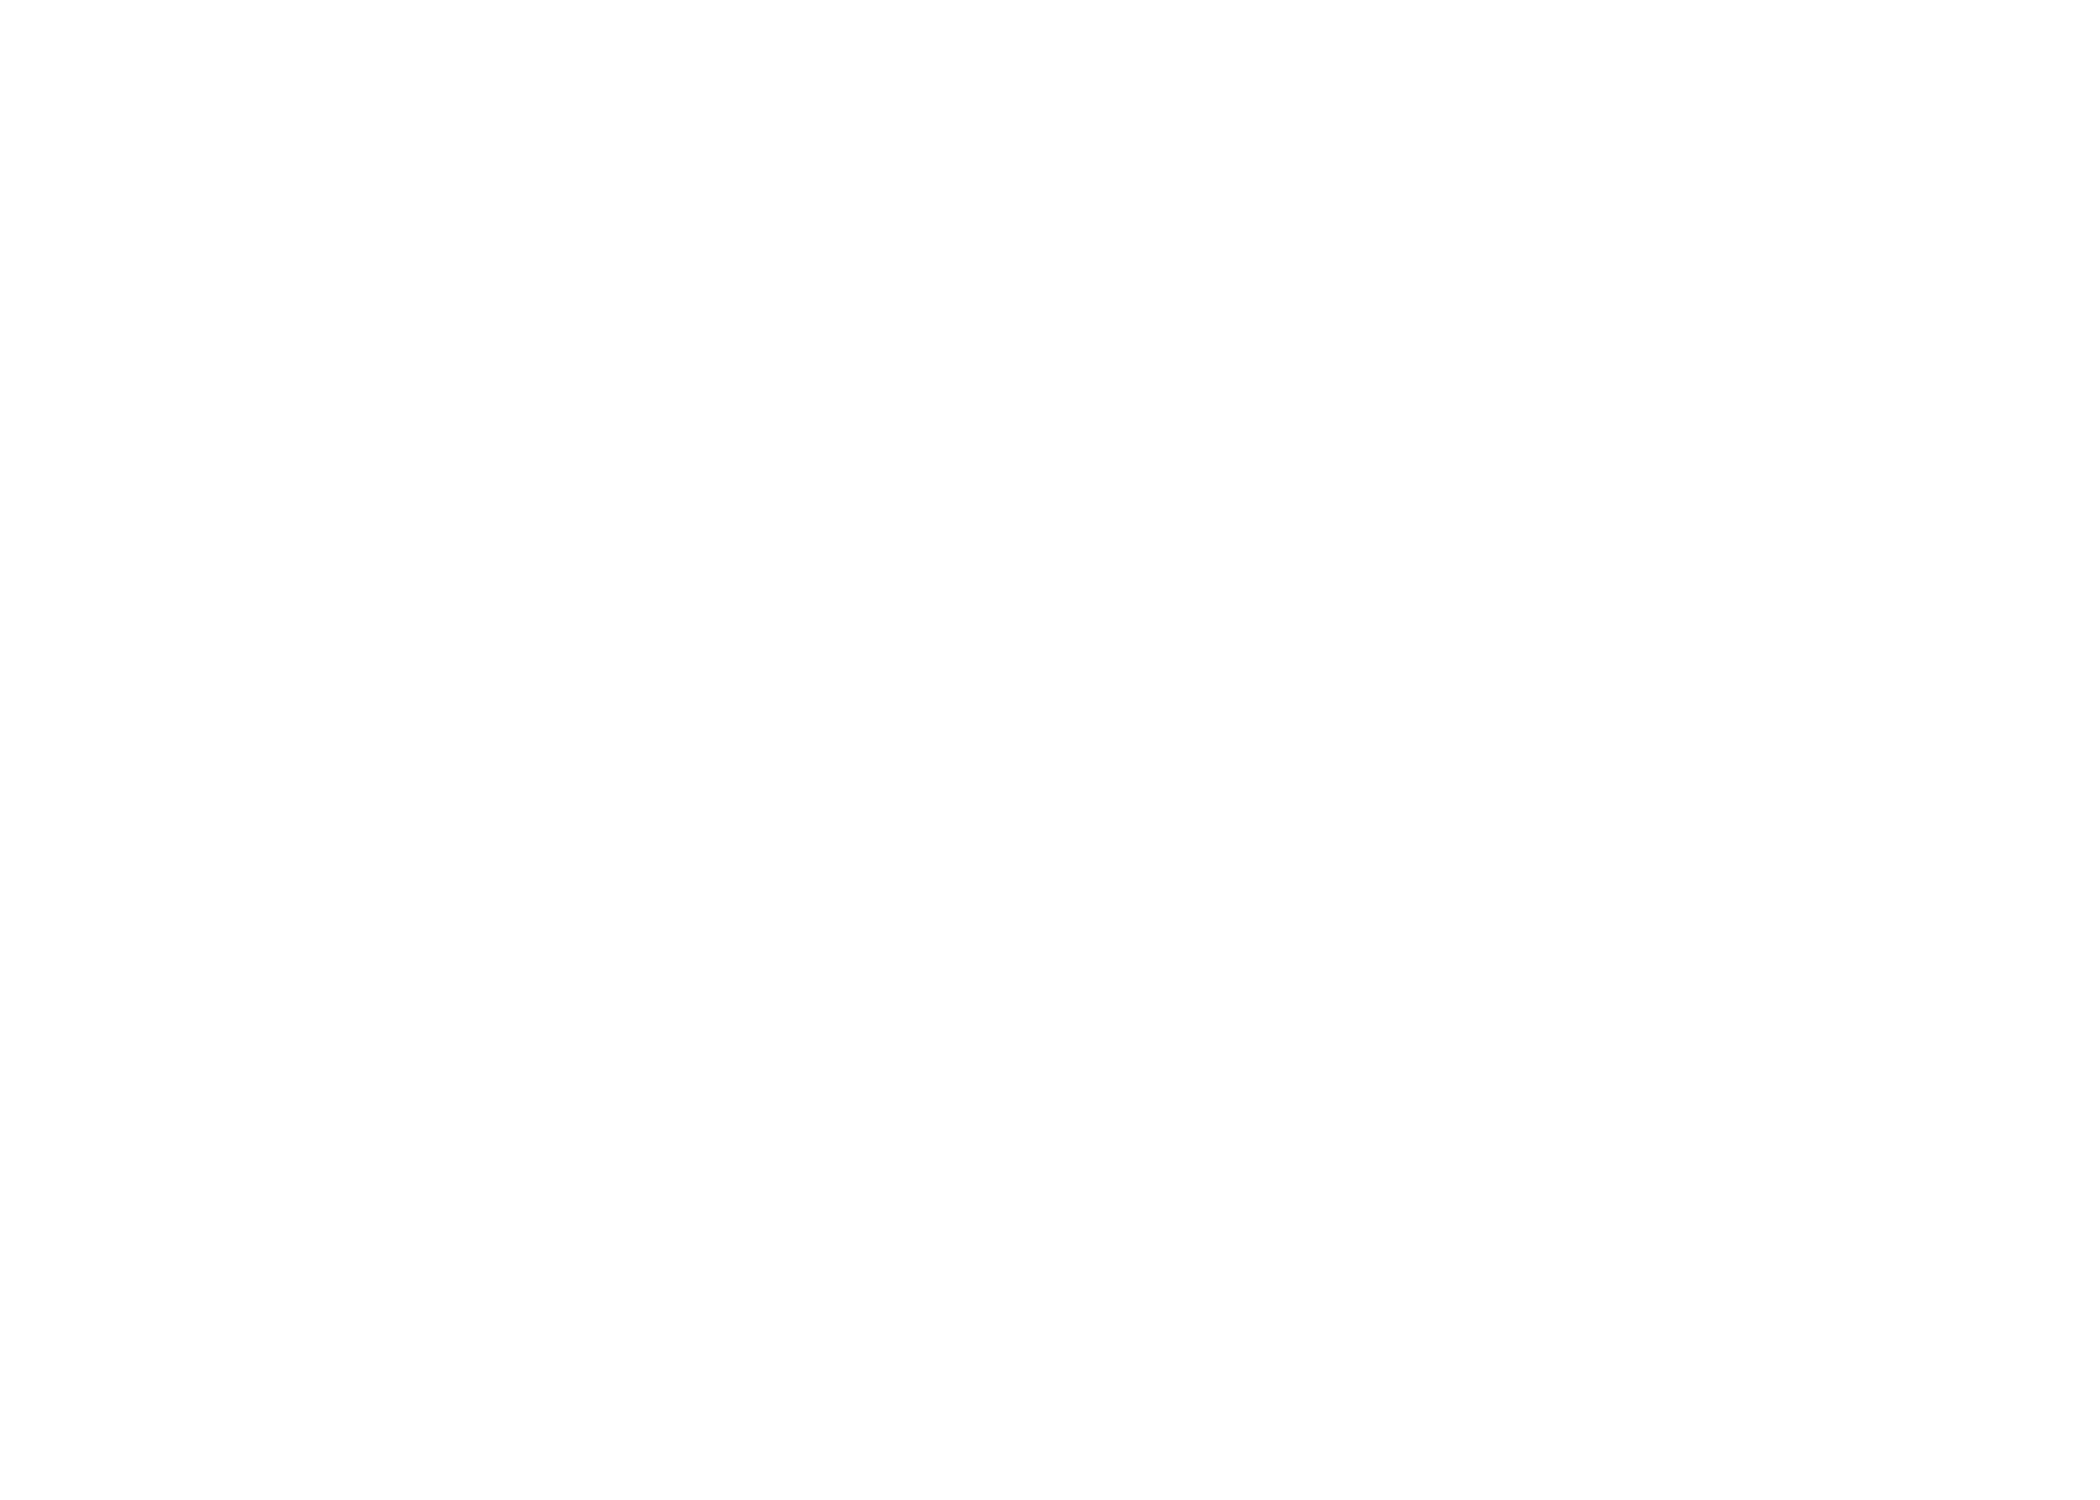 promise-01.png